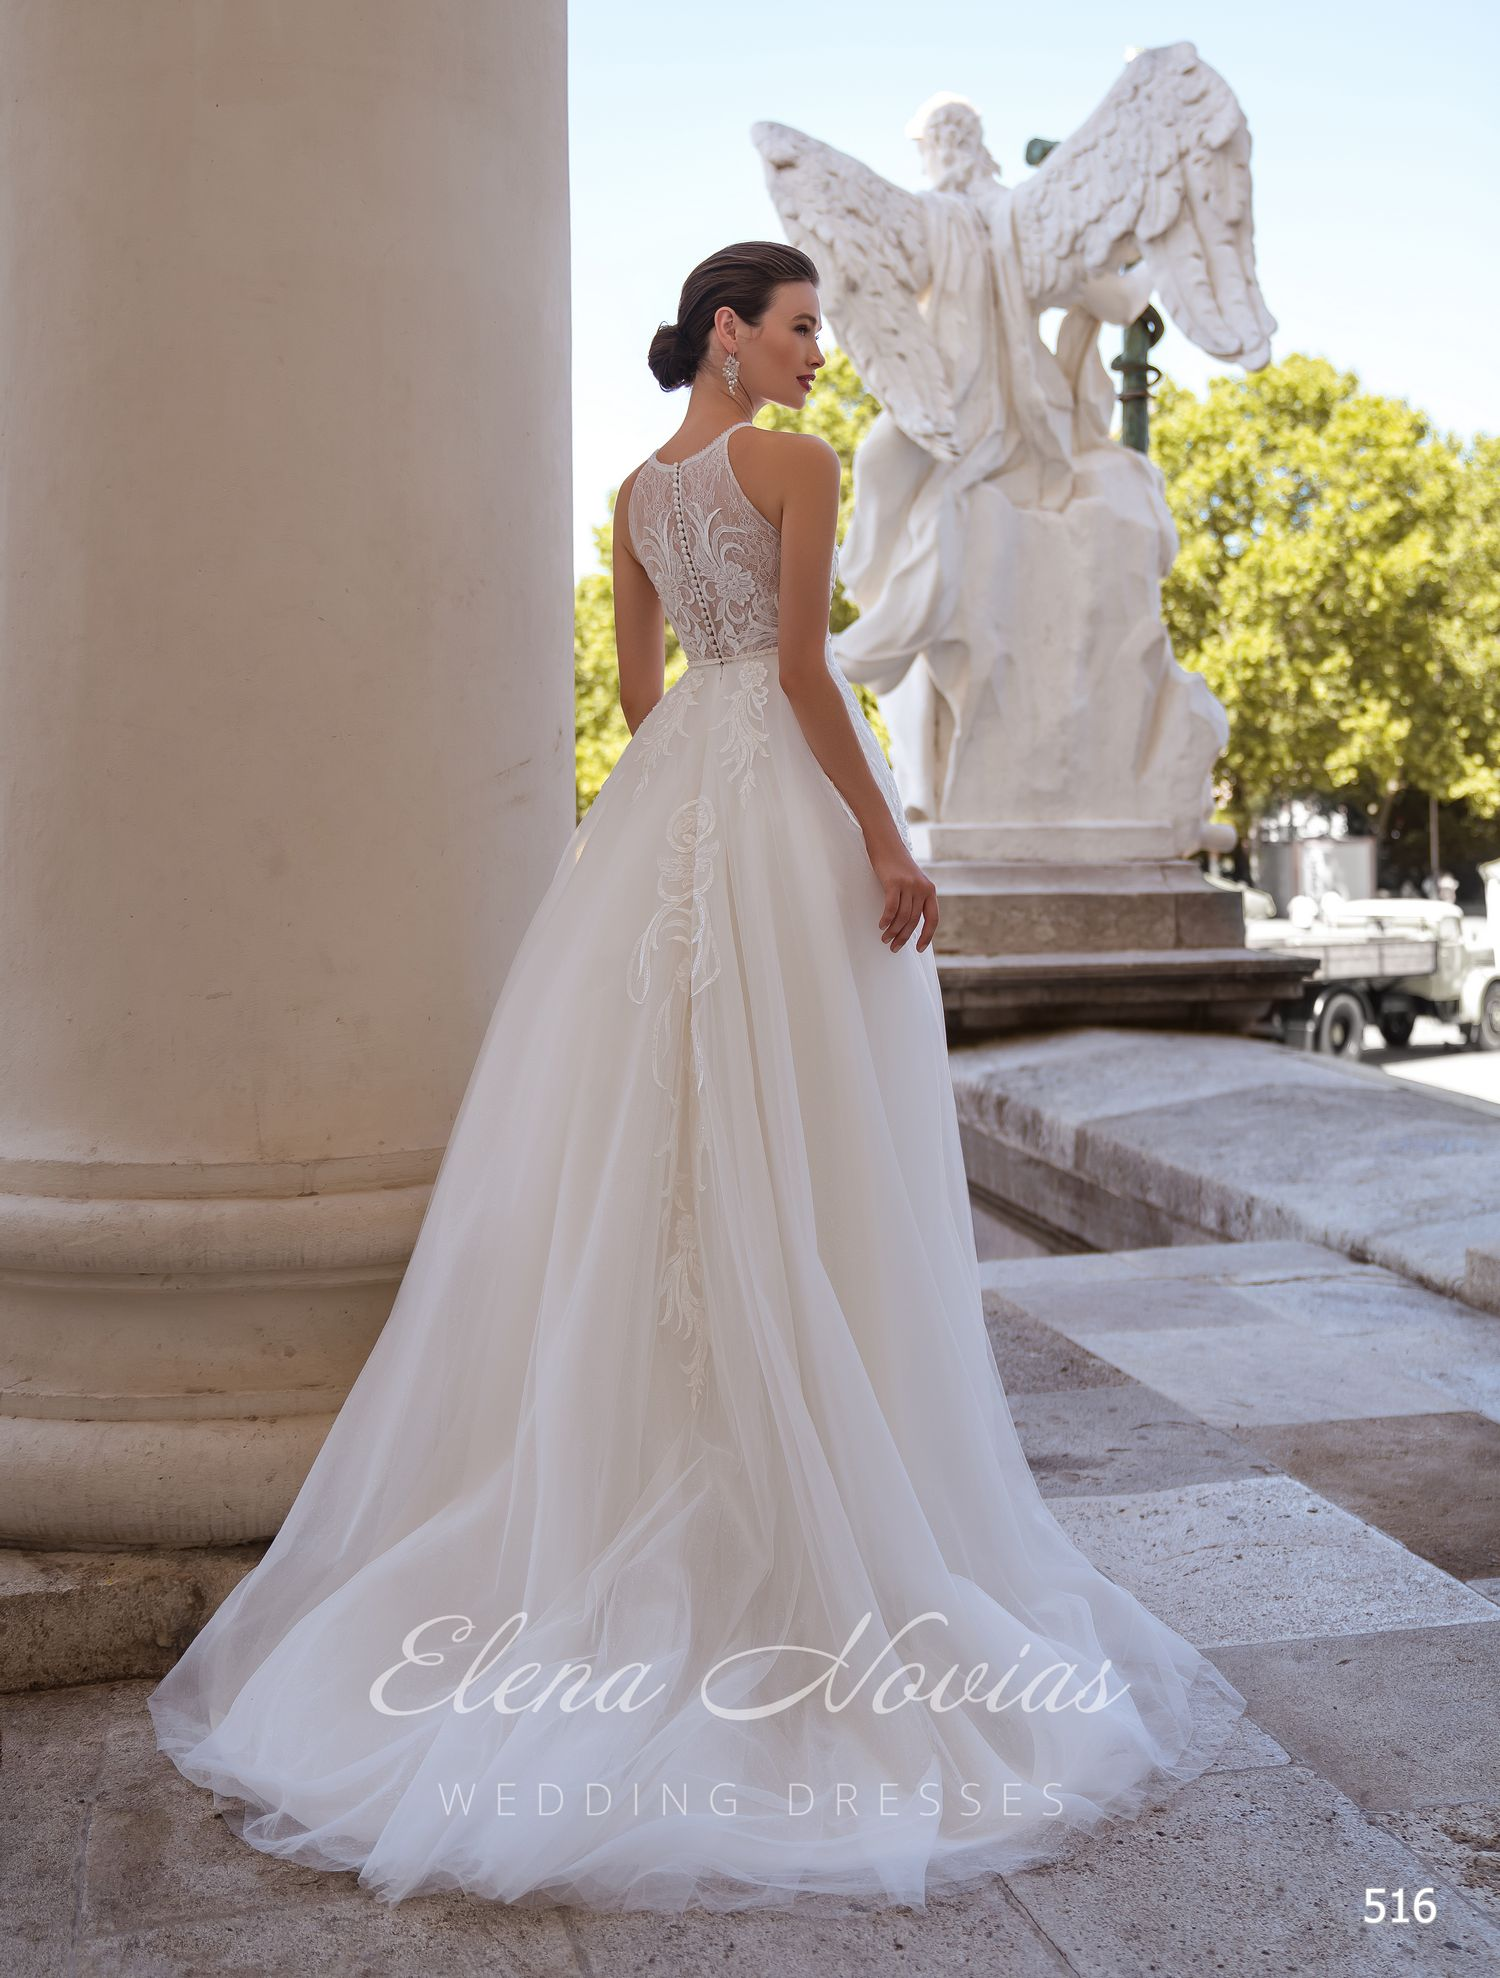 Wedding dresses 516 2